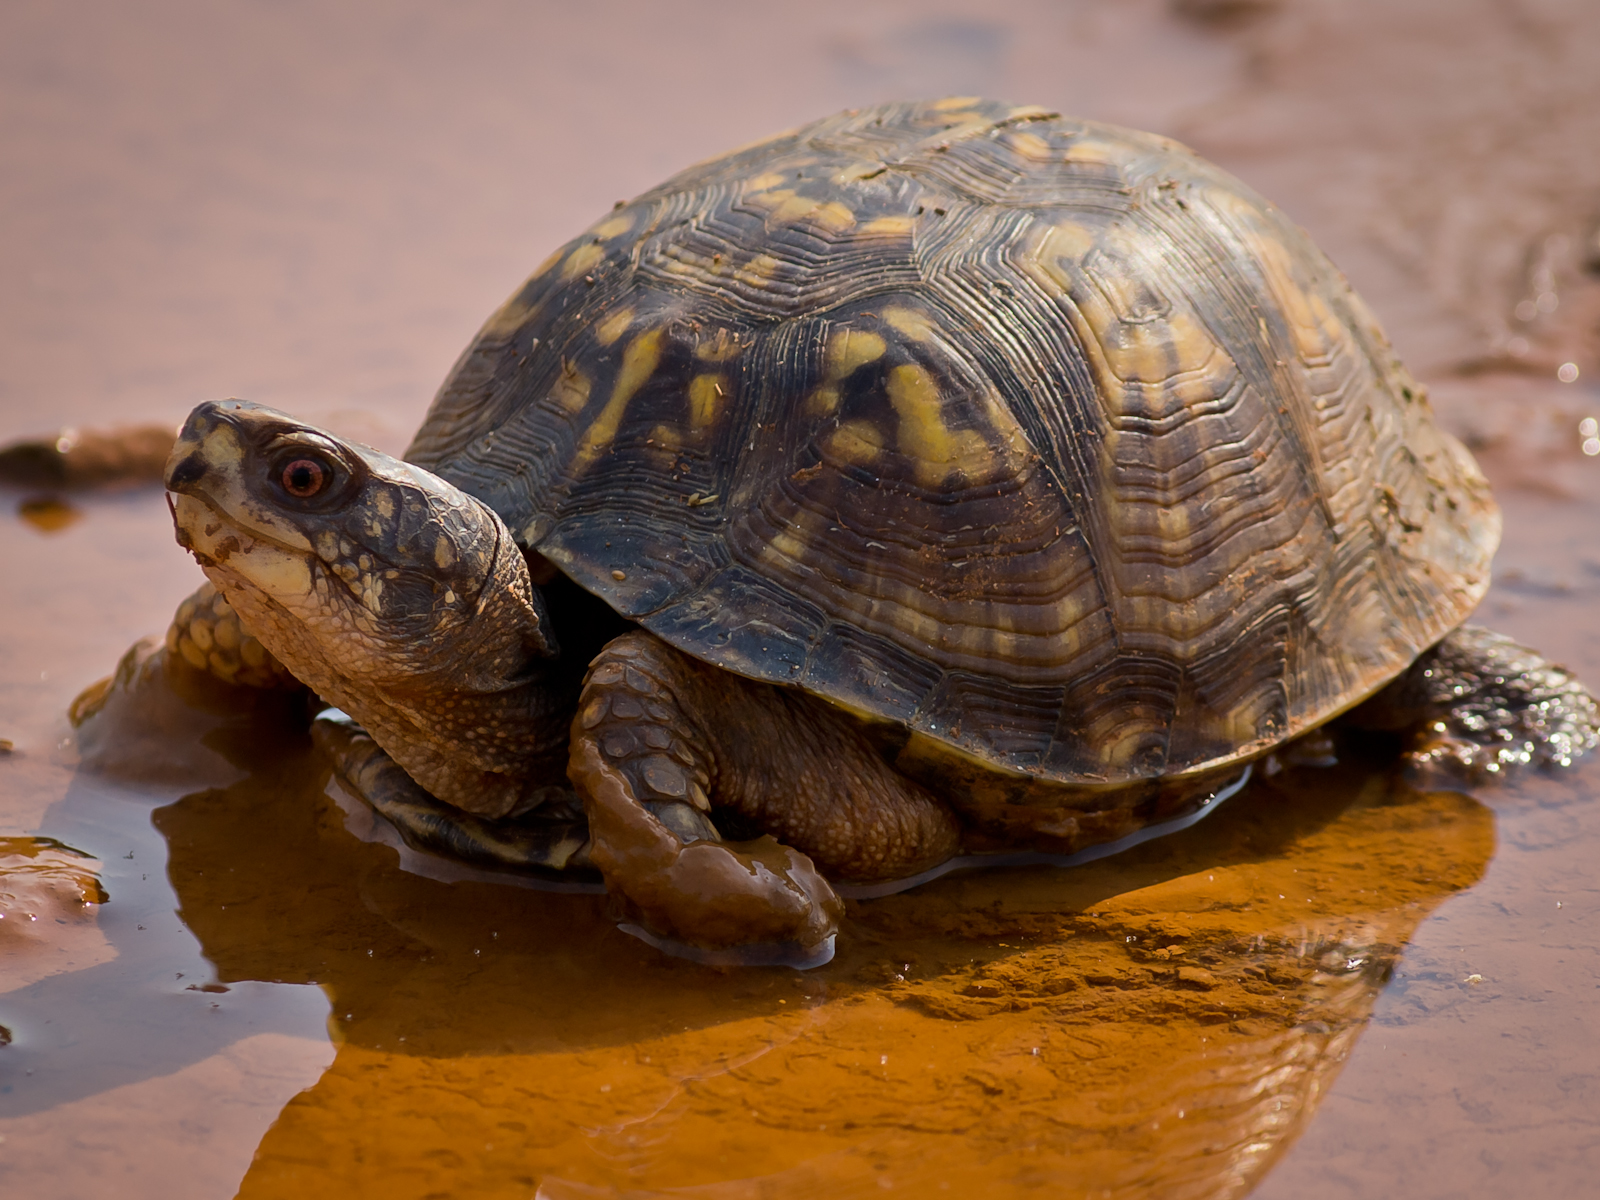 Eastern box turtle in shallow water